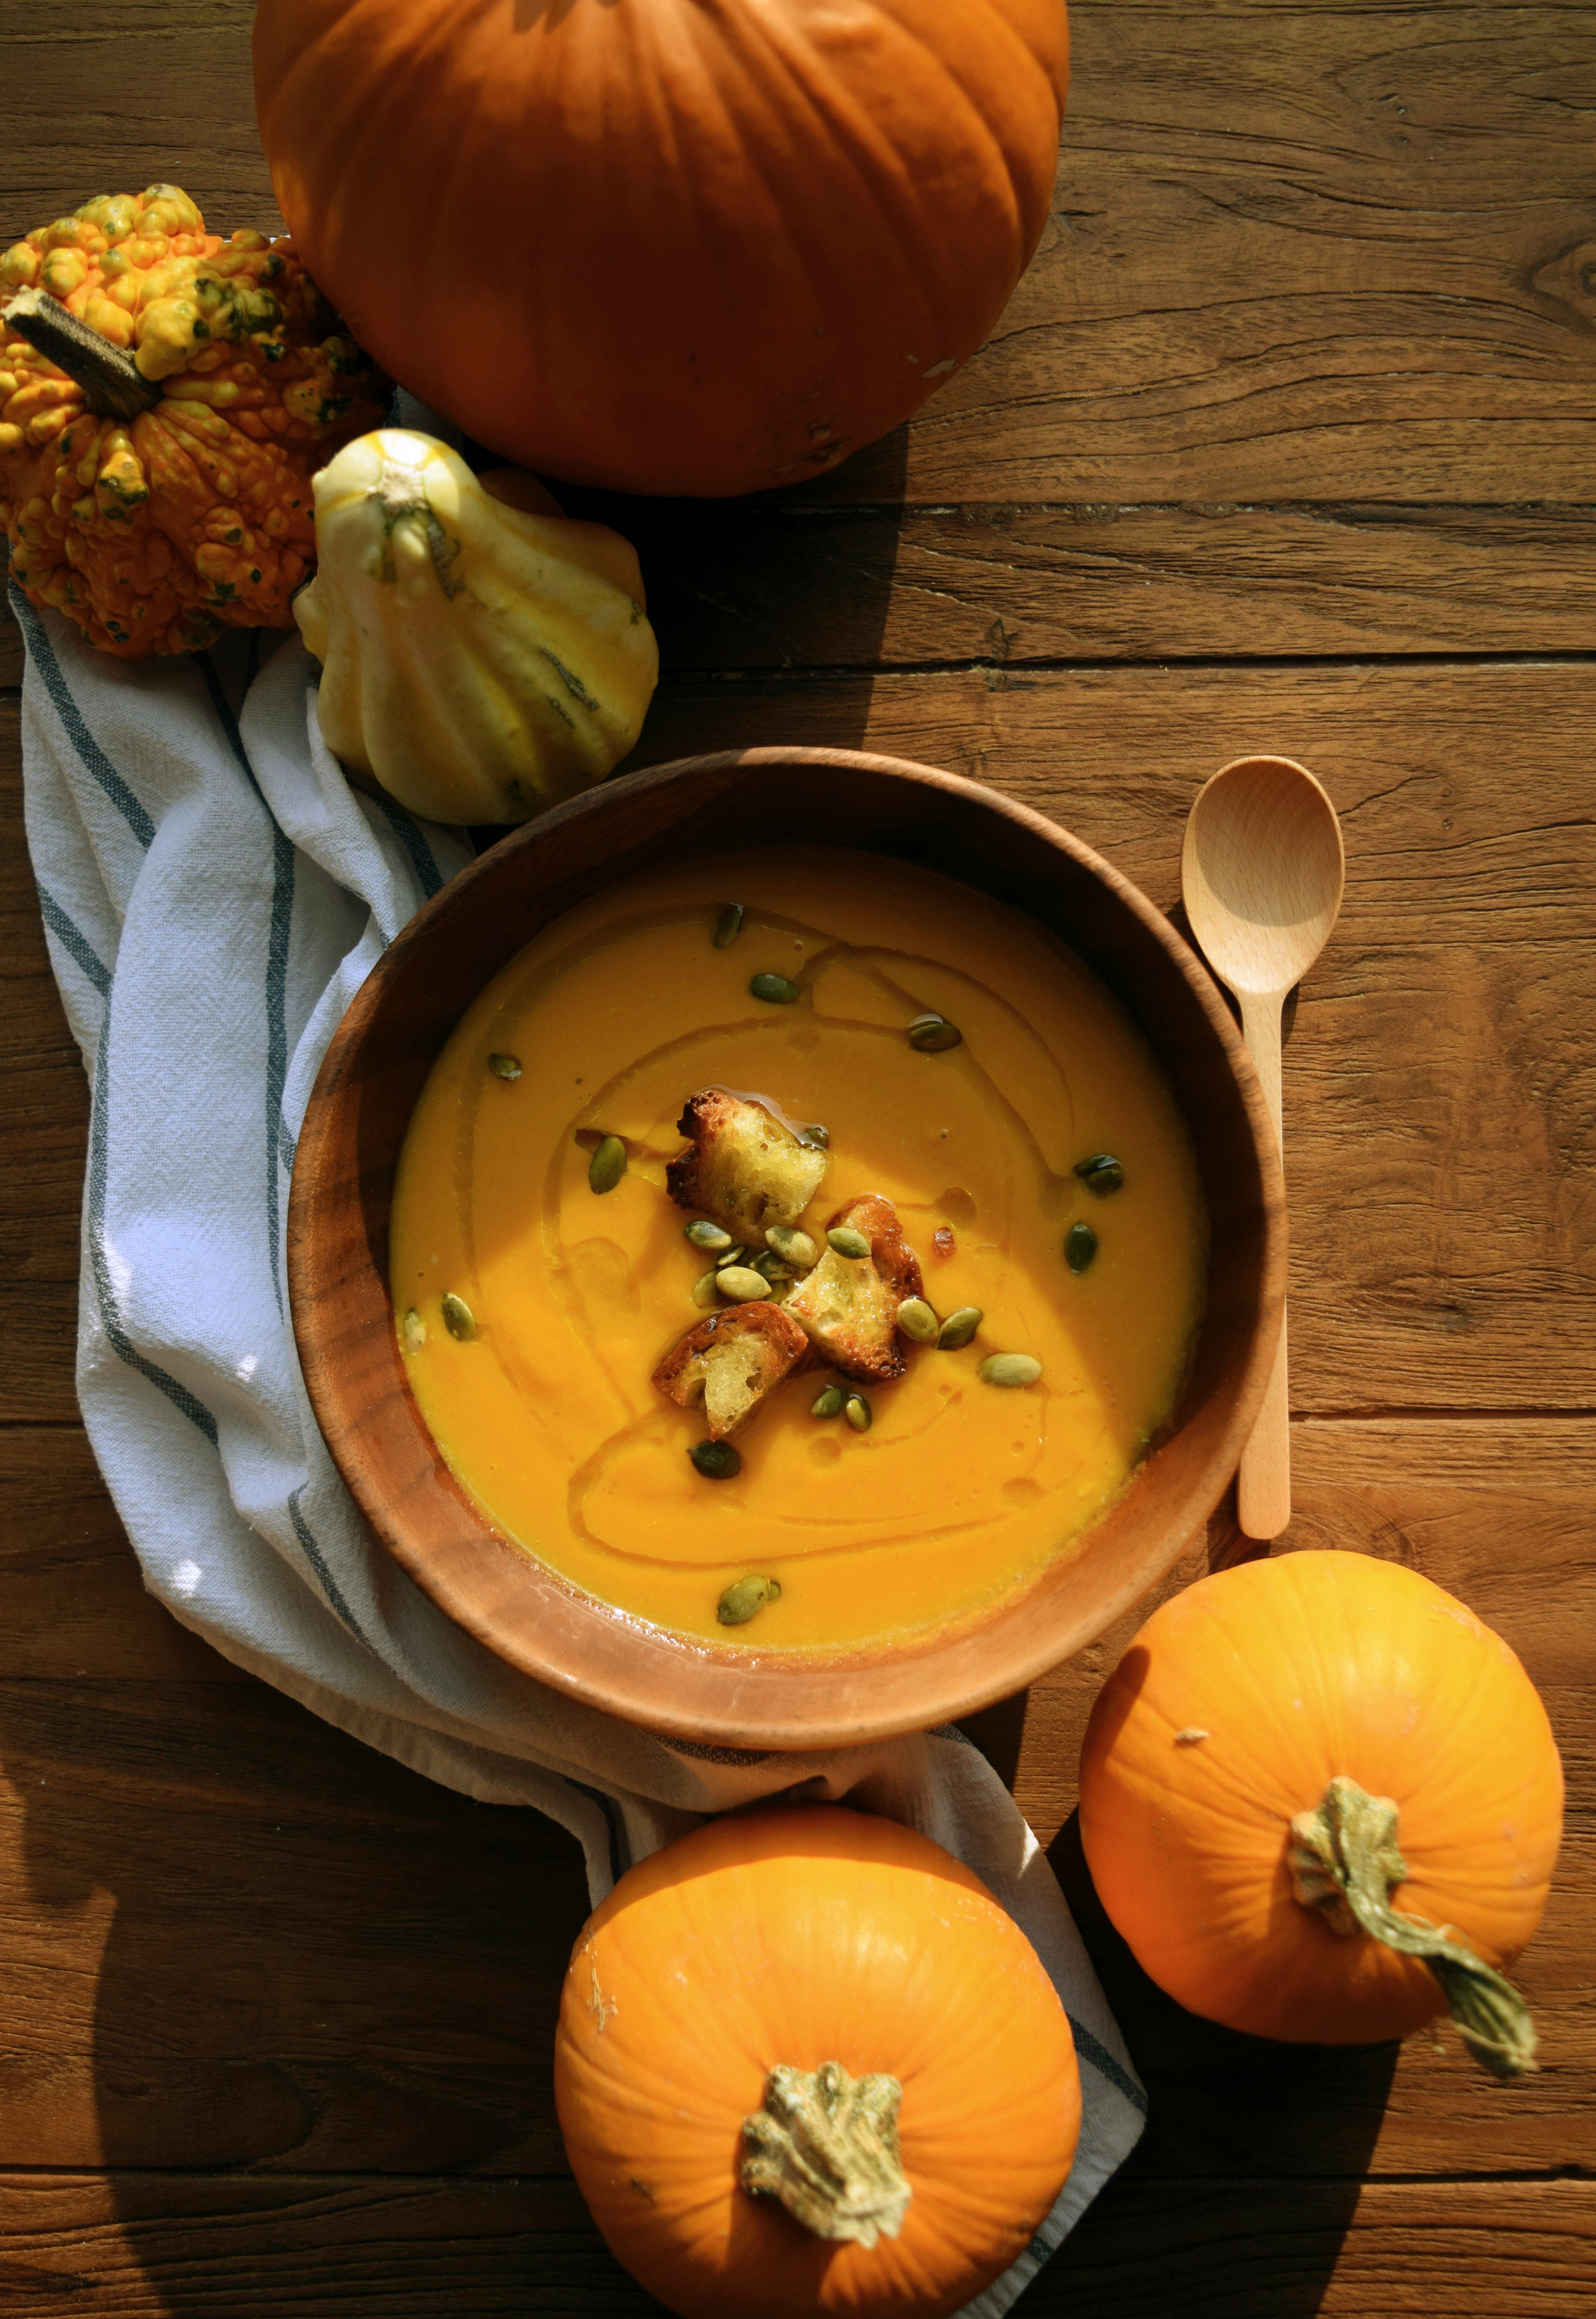 Delicious pumpkin and cheddar soup for cozy autumn days.